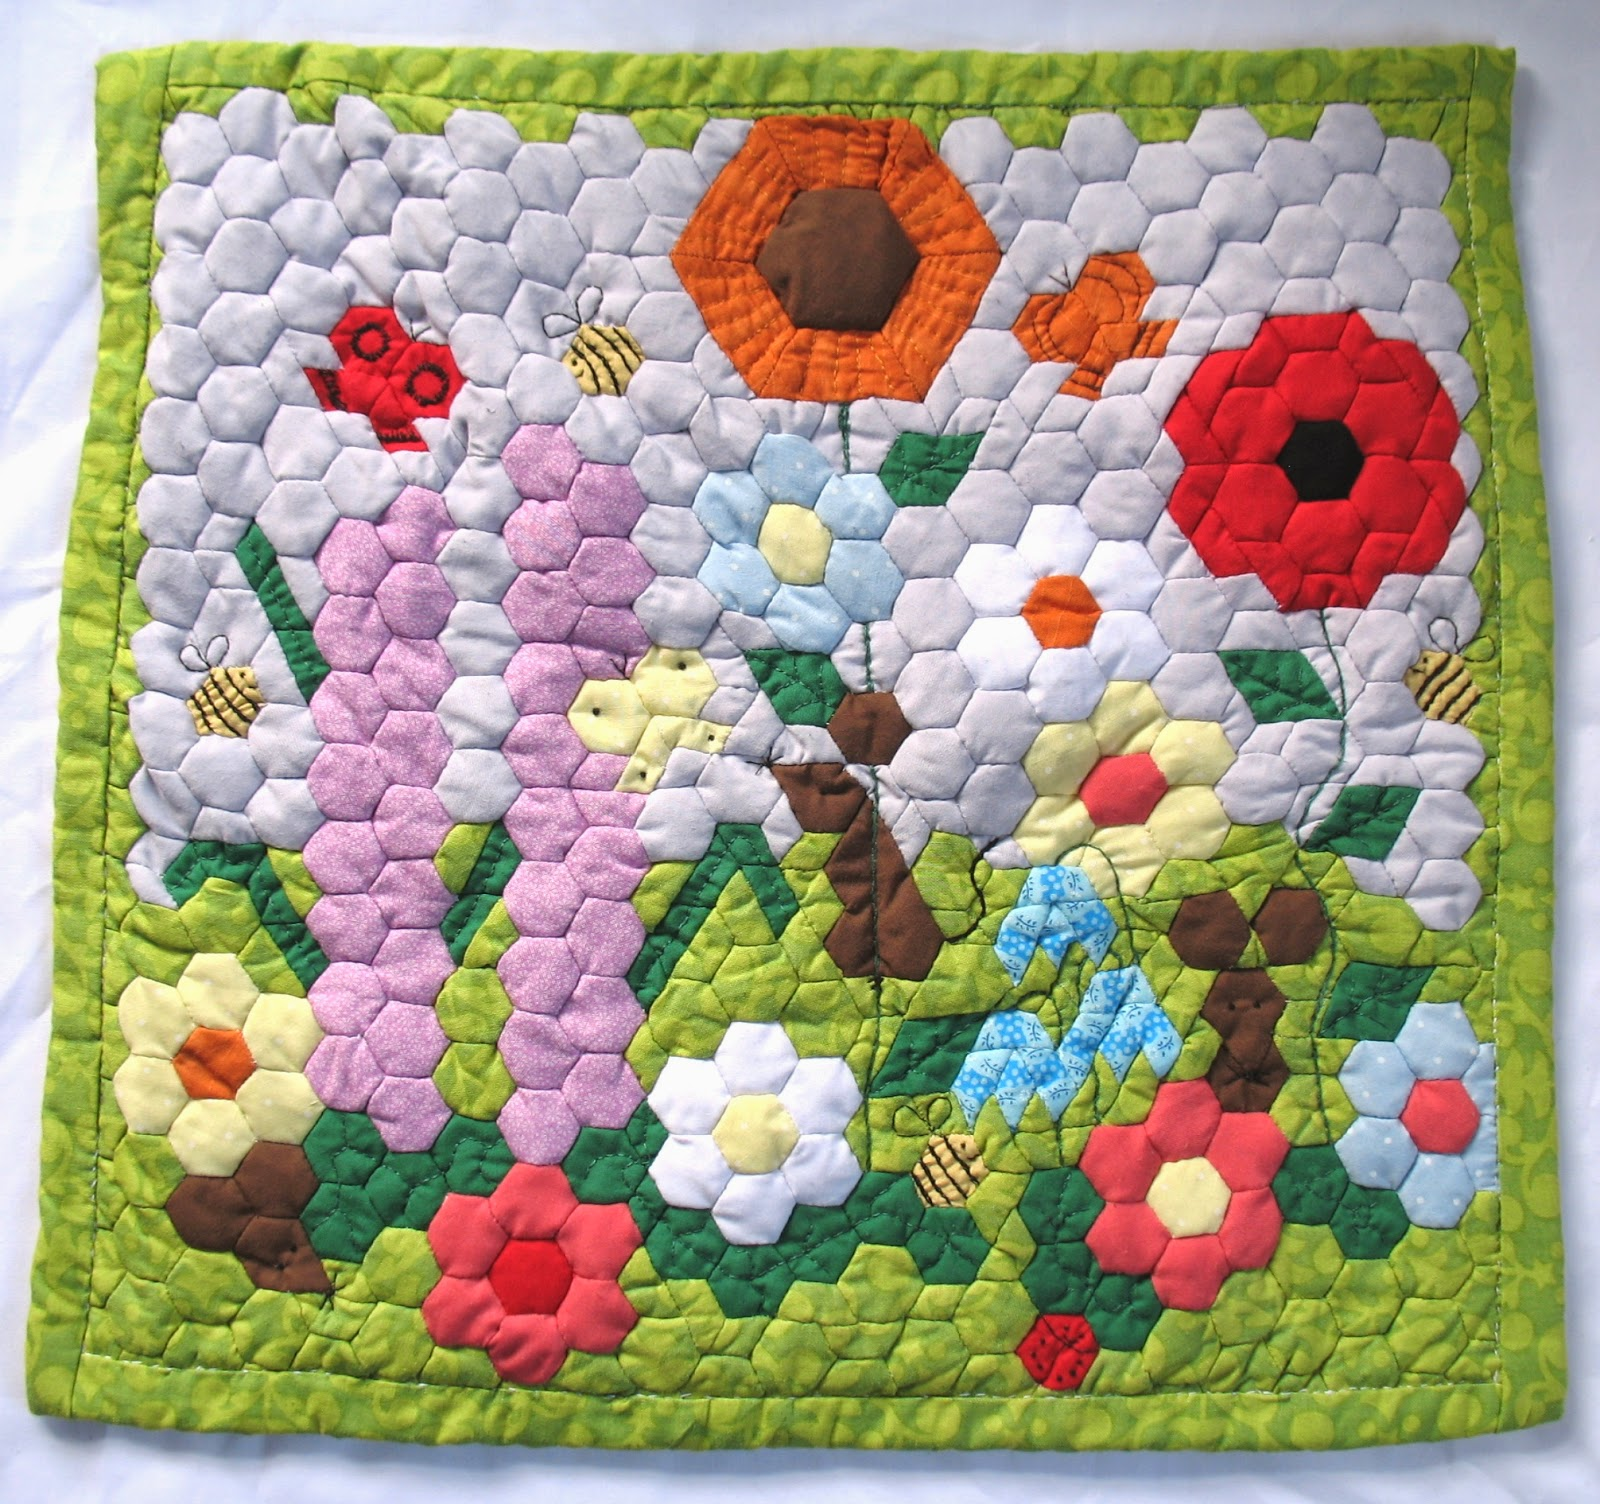 https://www.etsy.com/listing/187668060/patchwork-mini-quilt-summer-wild-flowers?ref=shop_home_feat_1